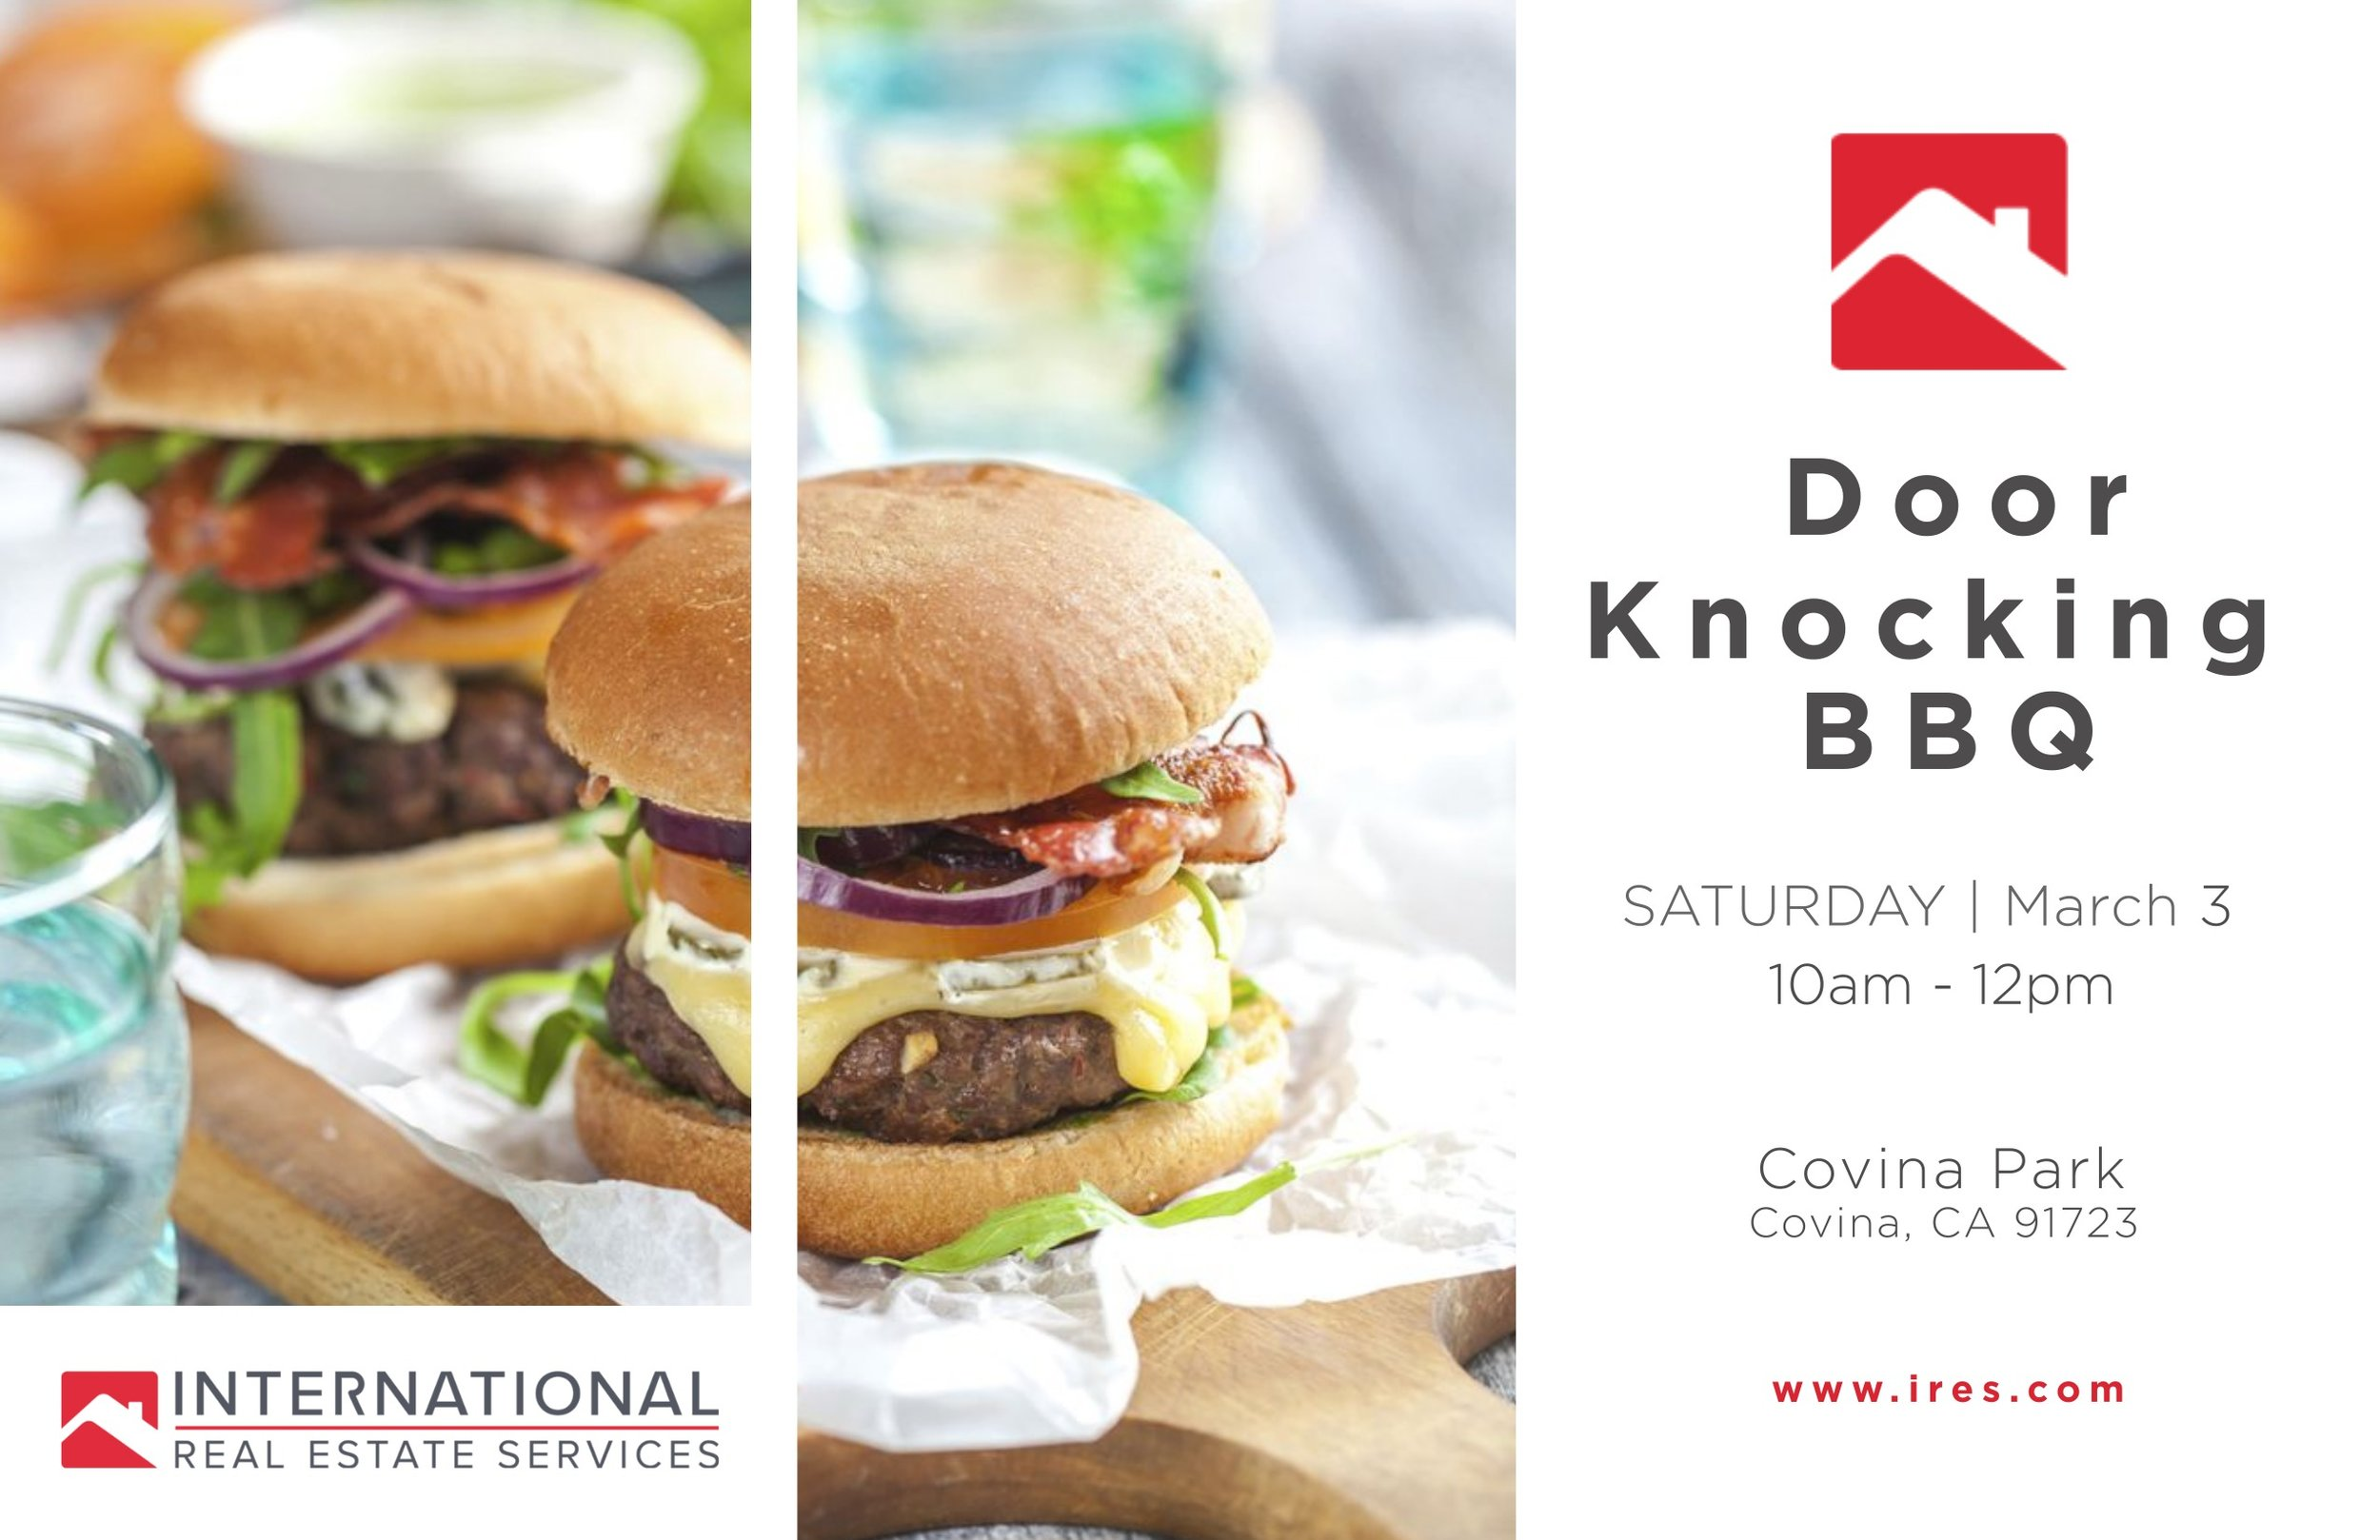 Knock, Knock...Who's There? IRES Agents Door Knocking Blitz! Saturday, March 3, 2018 from 10 am to 11:30 am. BBQ after door knocking blitz at Covina Park!  How is the Real Estate market in your area? Over 15 IRES agents will be out in the area of Puente and Citrus in city of covina to answer any of your real estate questions and give you a market update.